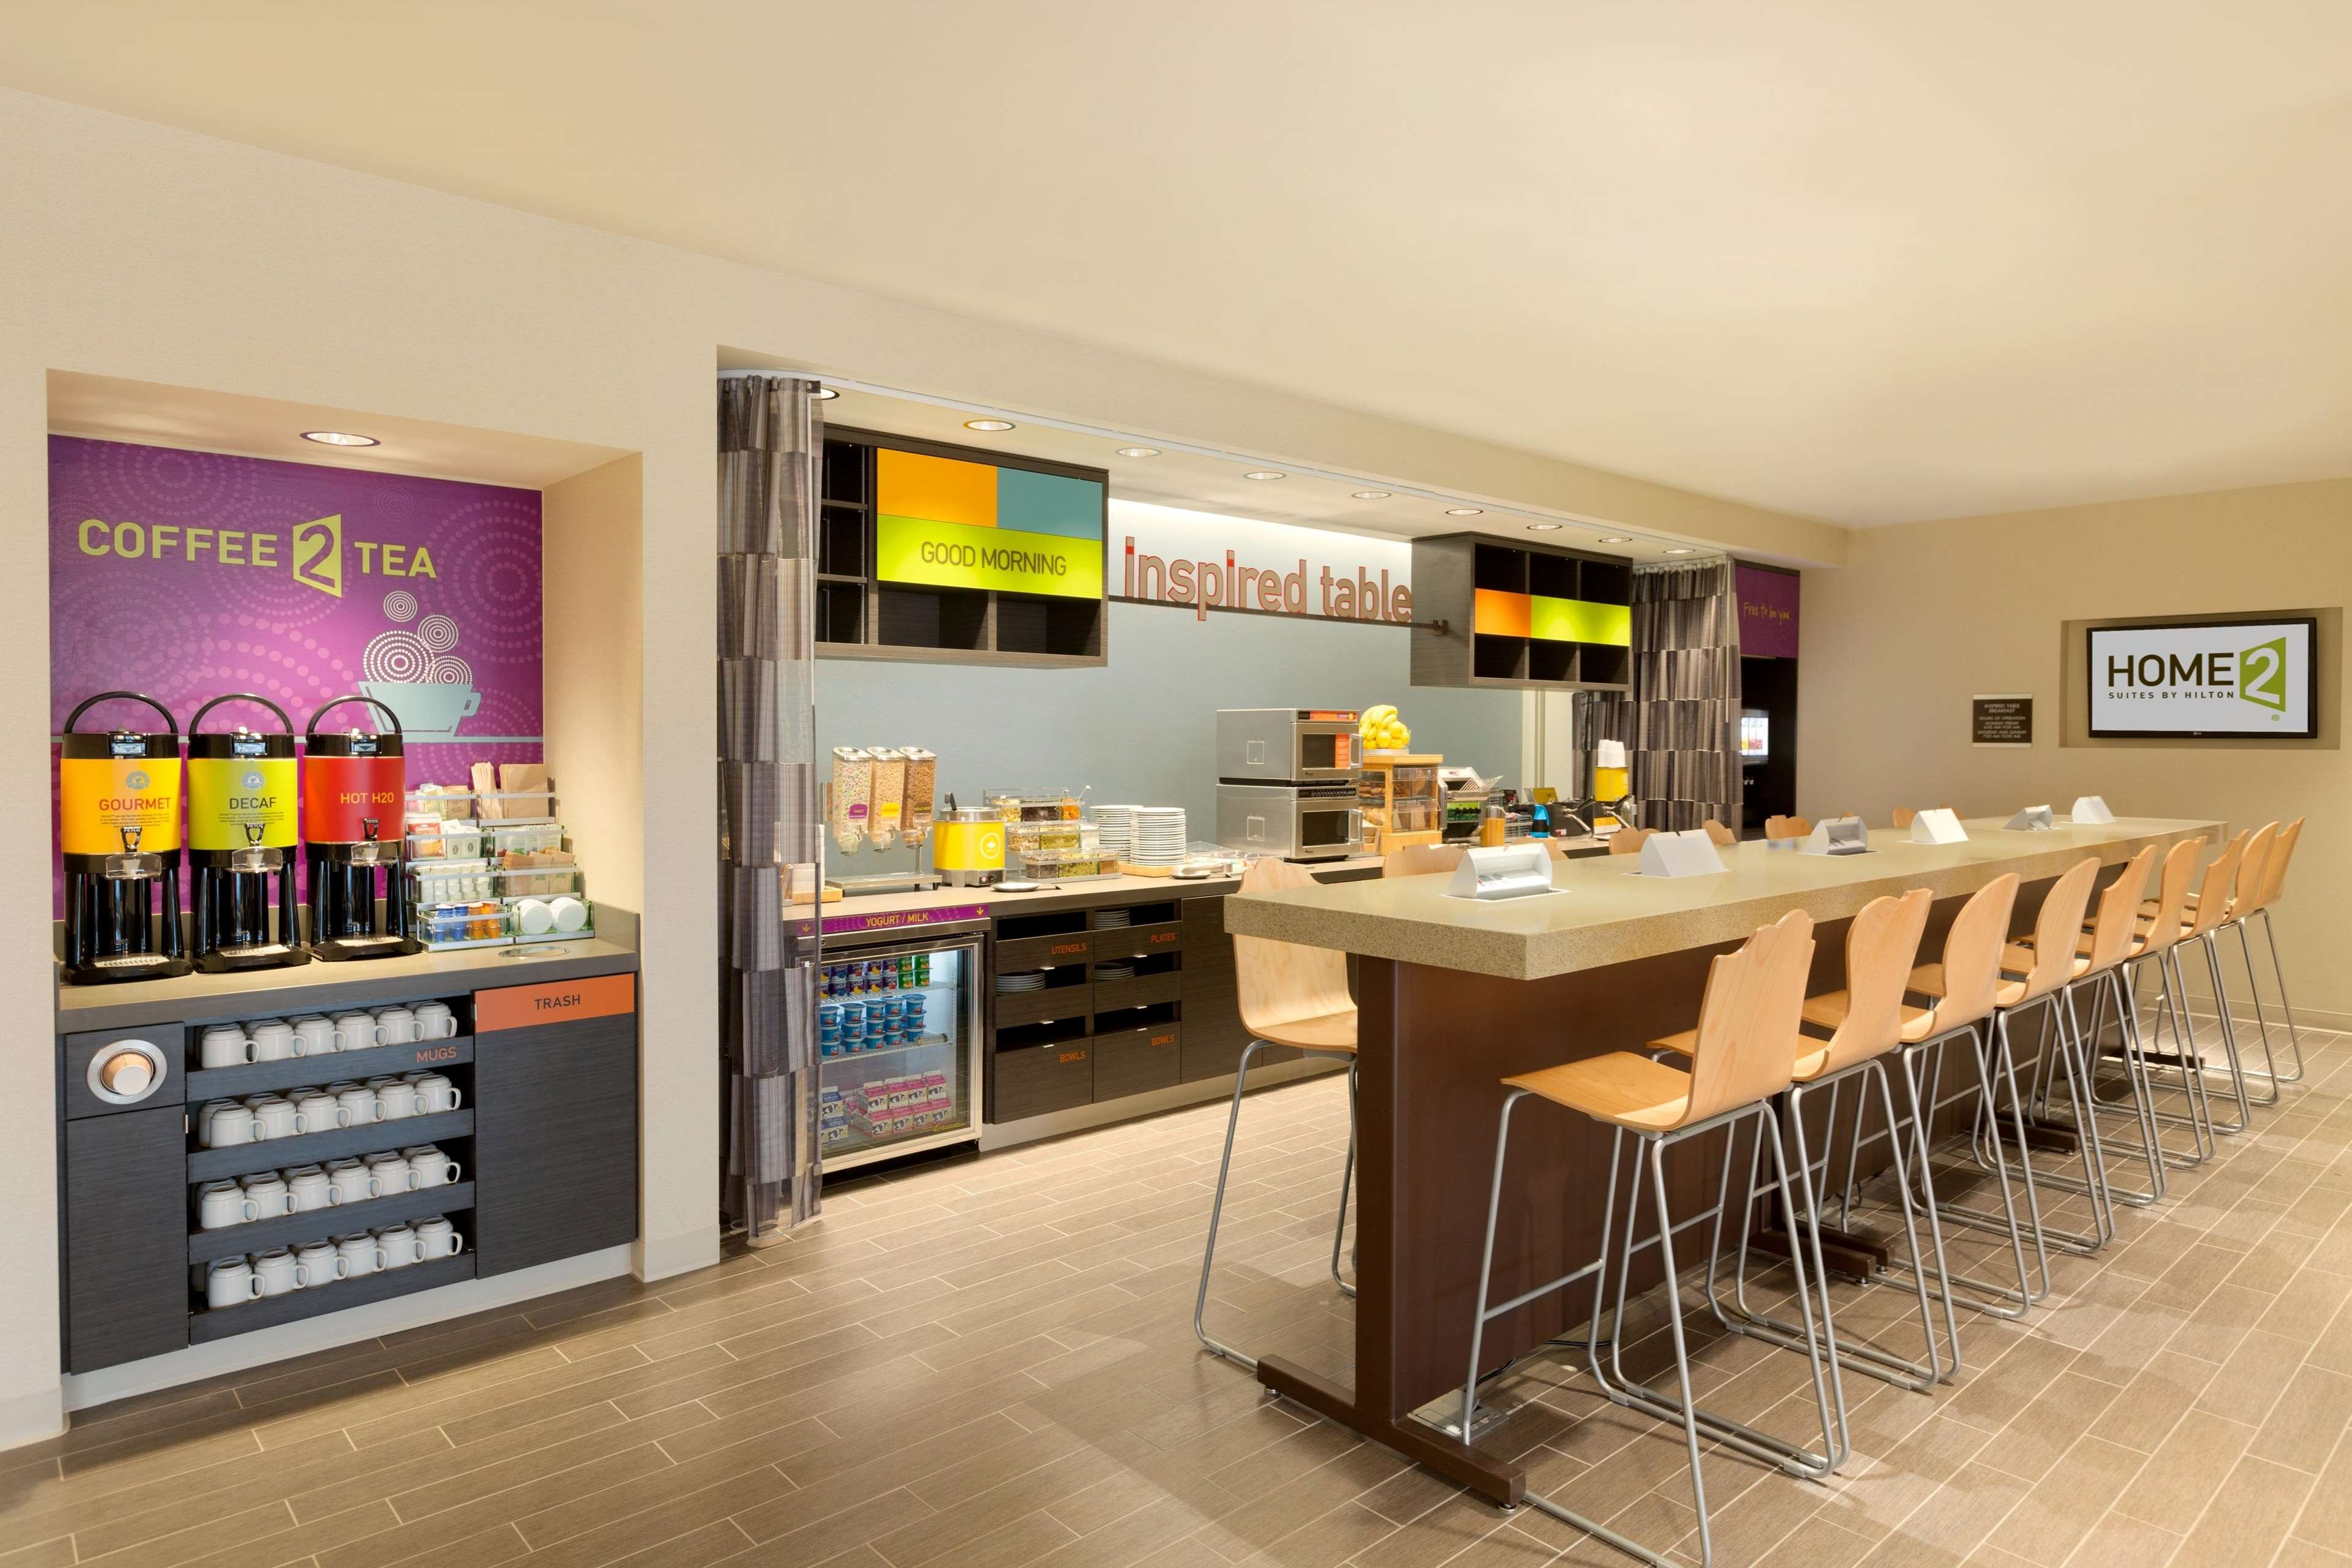 Home2 Suites by Hilton West Edmonton, Alberta, Canada in Edmonton: Inspired Table